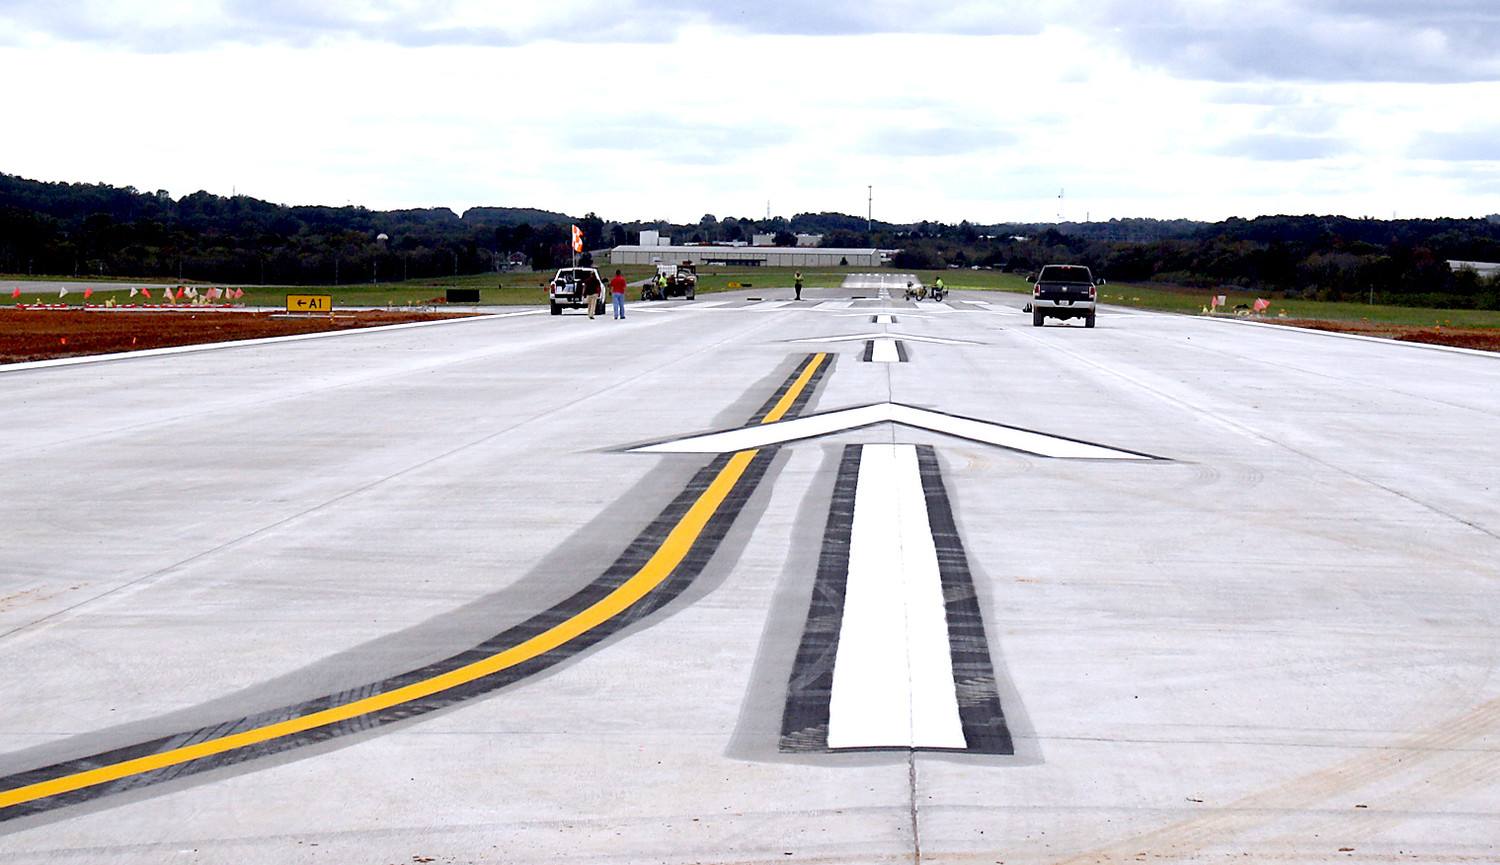 THIS IS THE WIDE expanse and markings on the new runway extension at the Cleveland Jetport. The $2.5 million project was made possible by a grant from the Tennessee Aeronautical Commission, spearheaded by State Rep. Kevin Brooks of Cleveland.